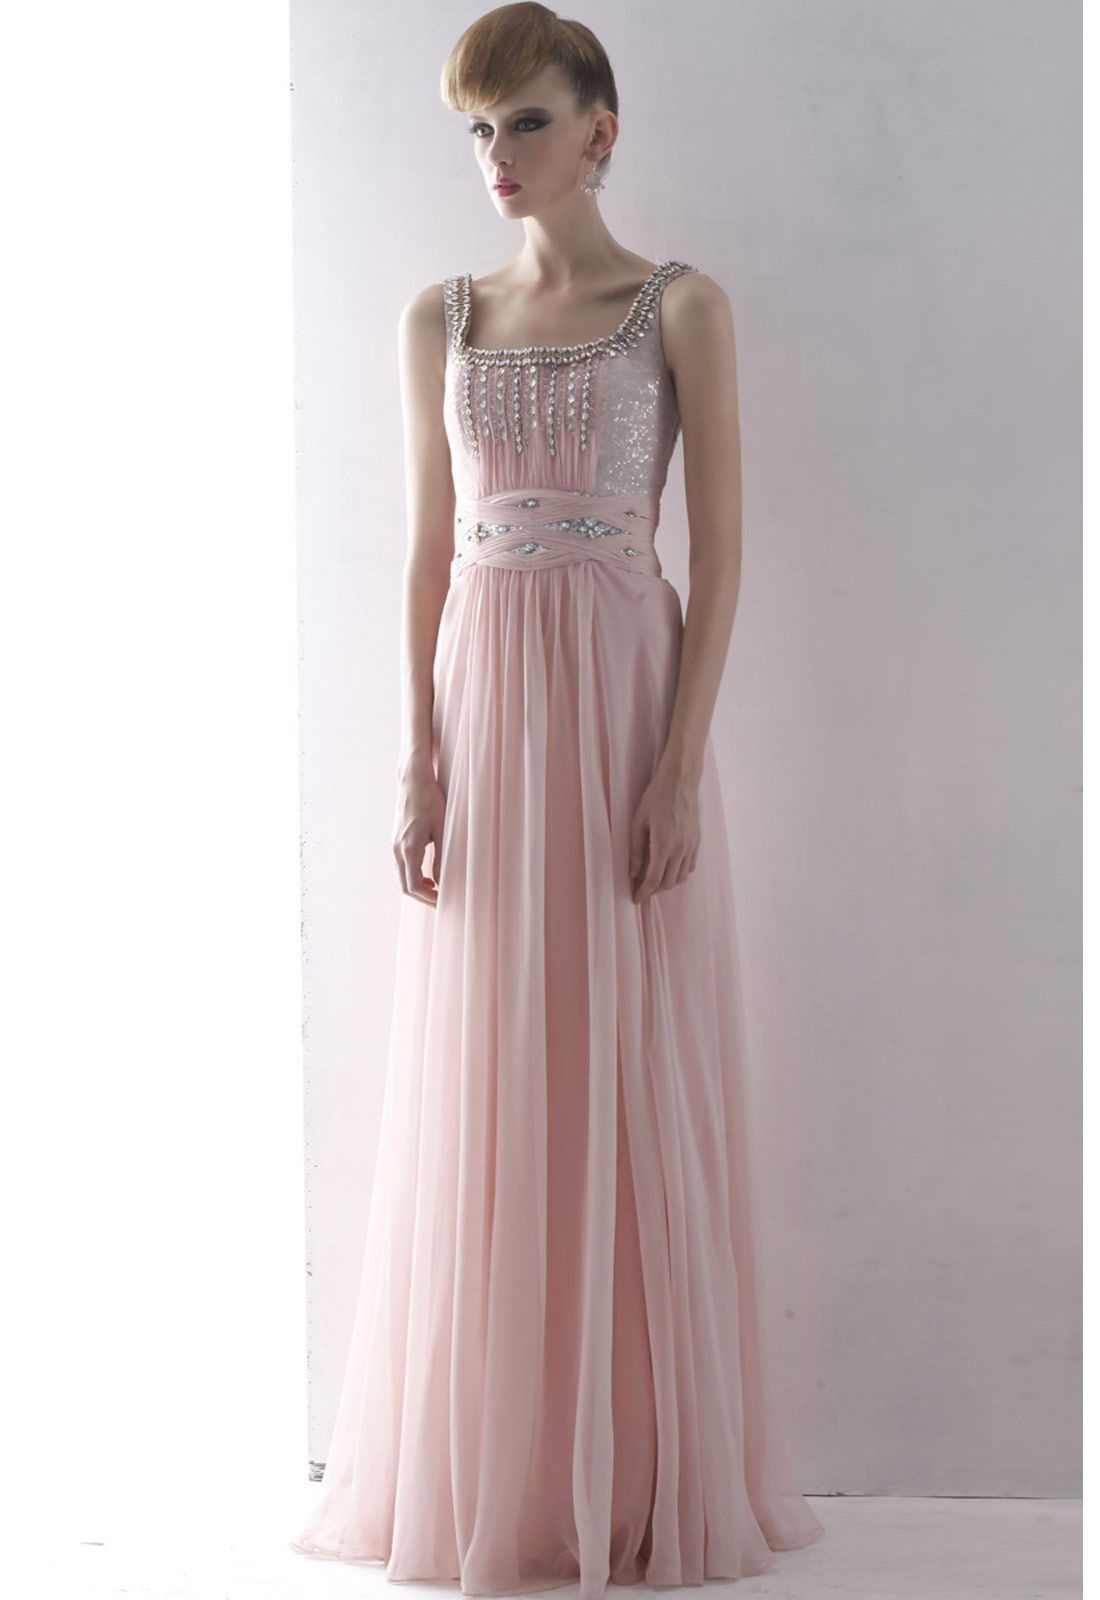 Elliot Claire Pink Chiffon Prom Dress with Shimmer Detail | Evening ...